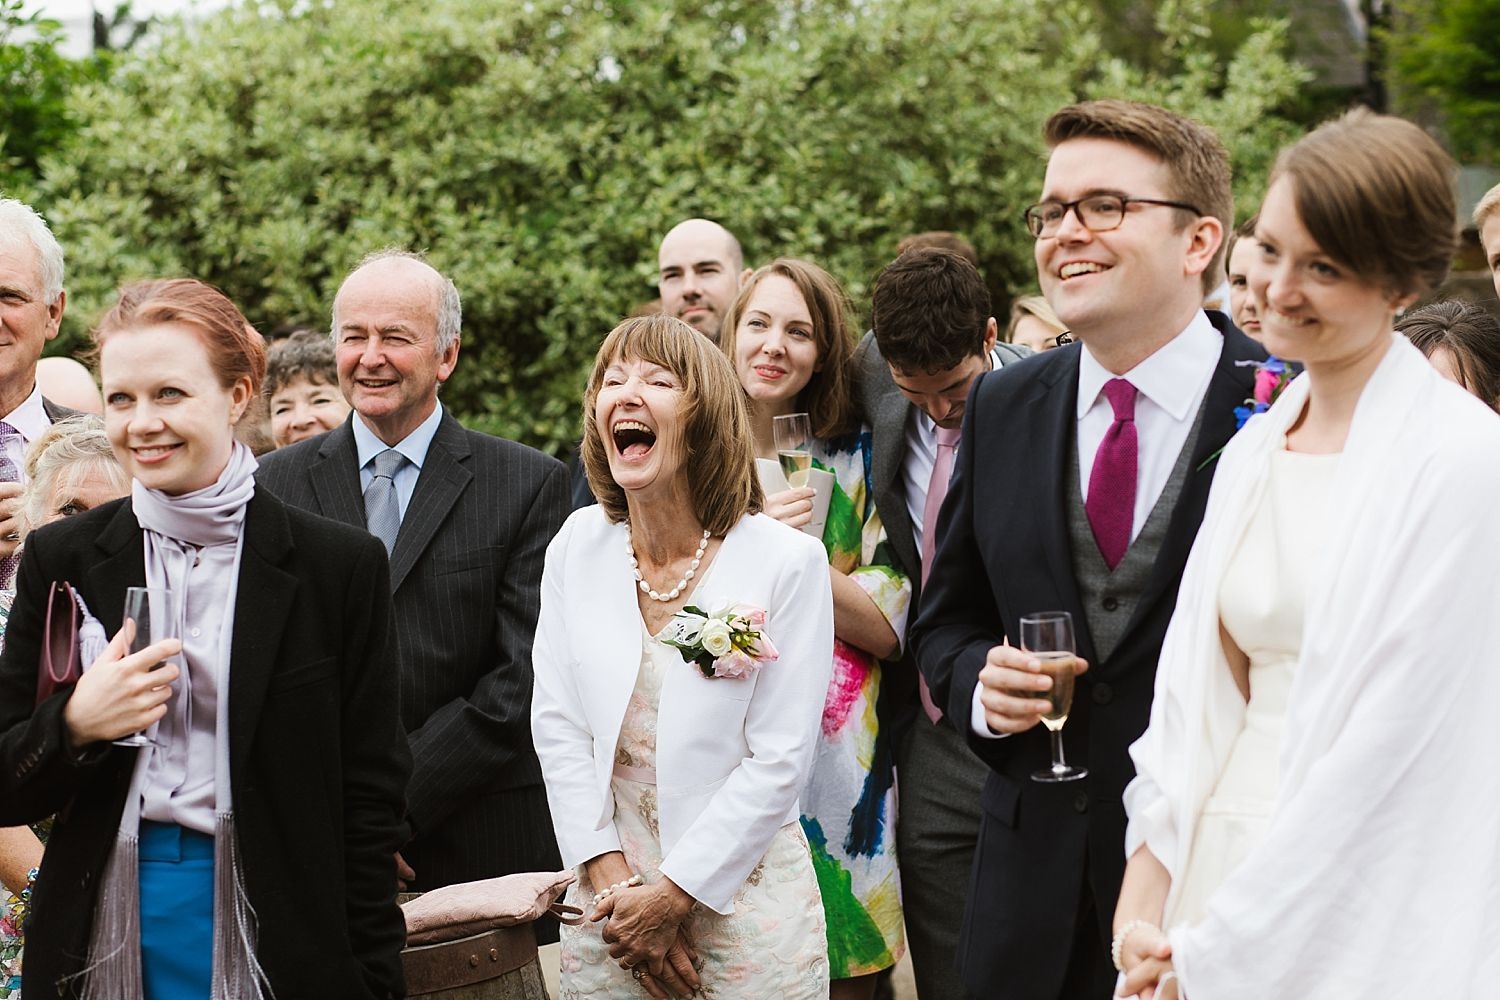 Guests enjoying outdoor speech at Park House Barn wedding reception